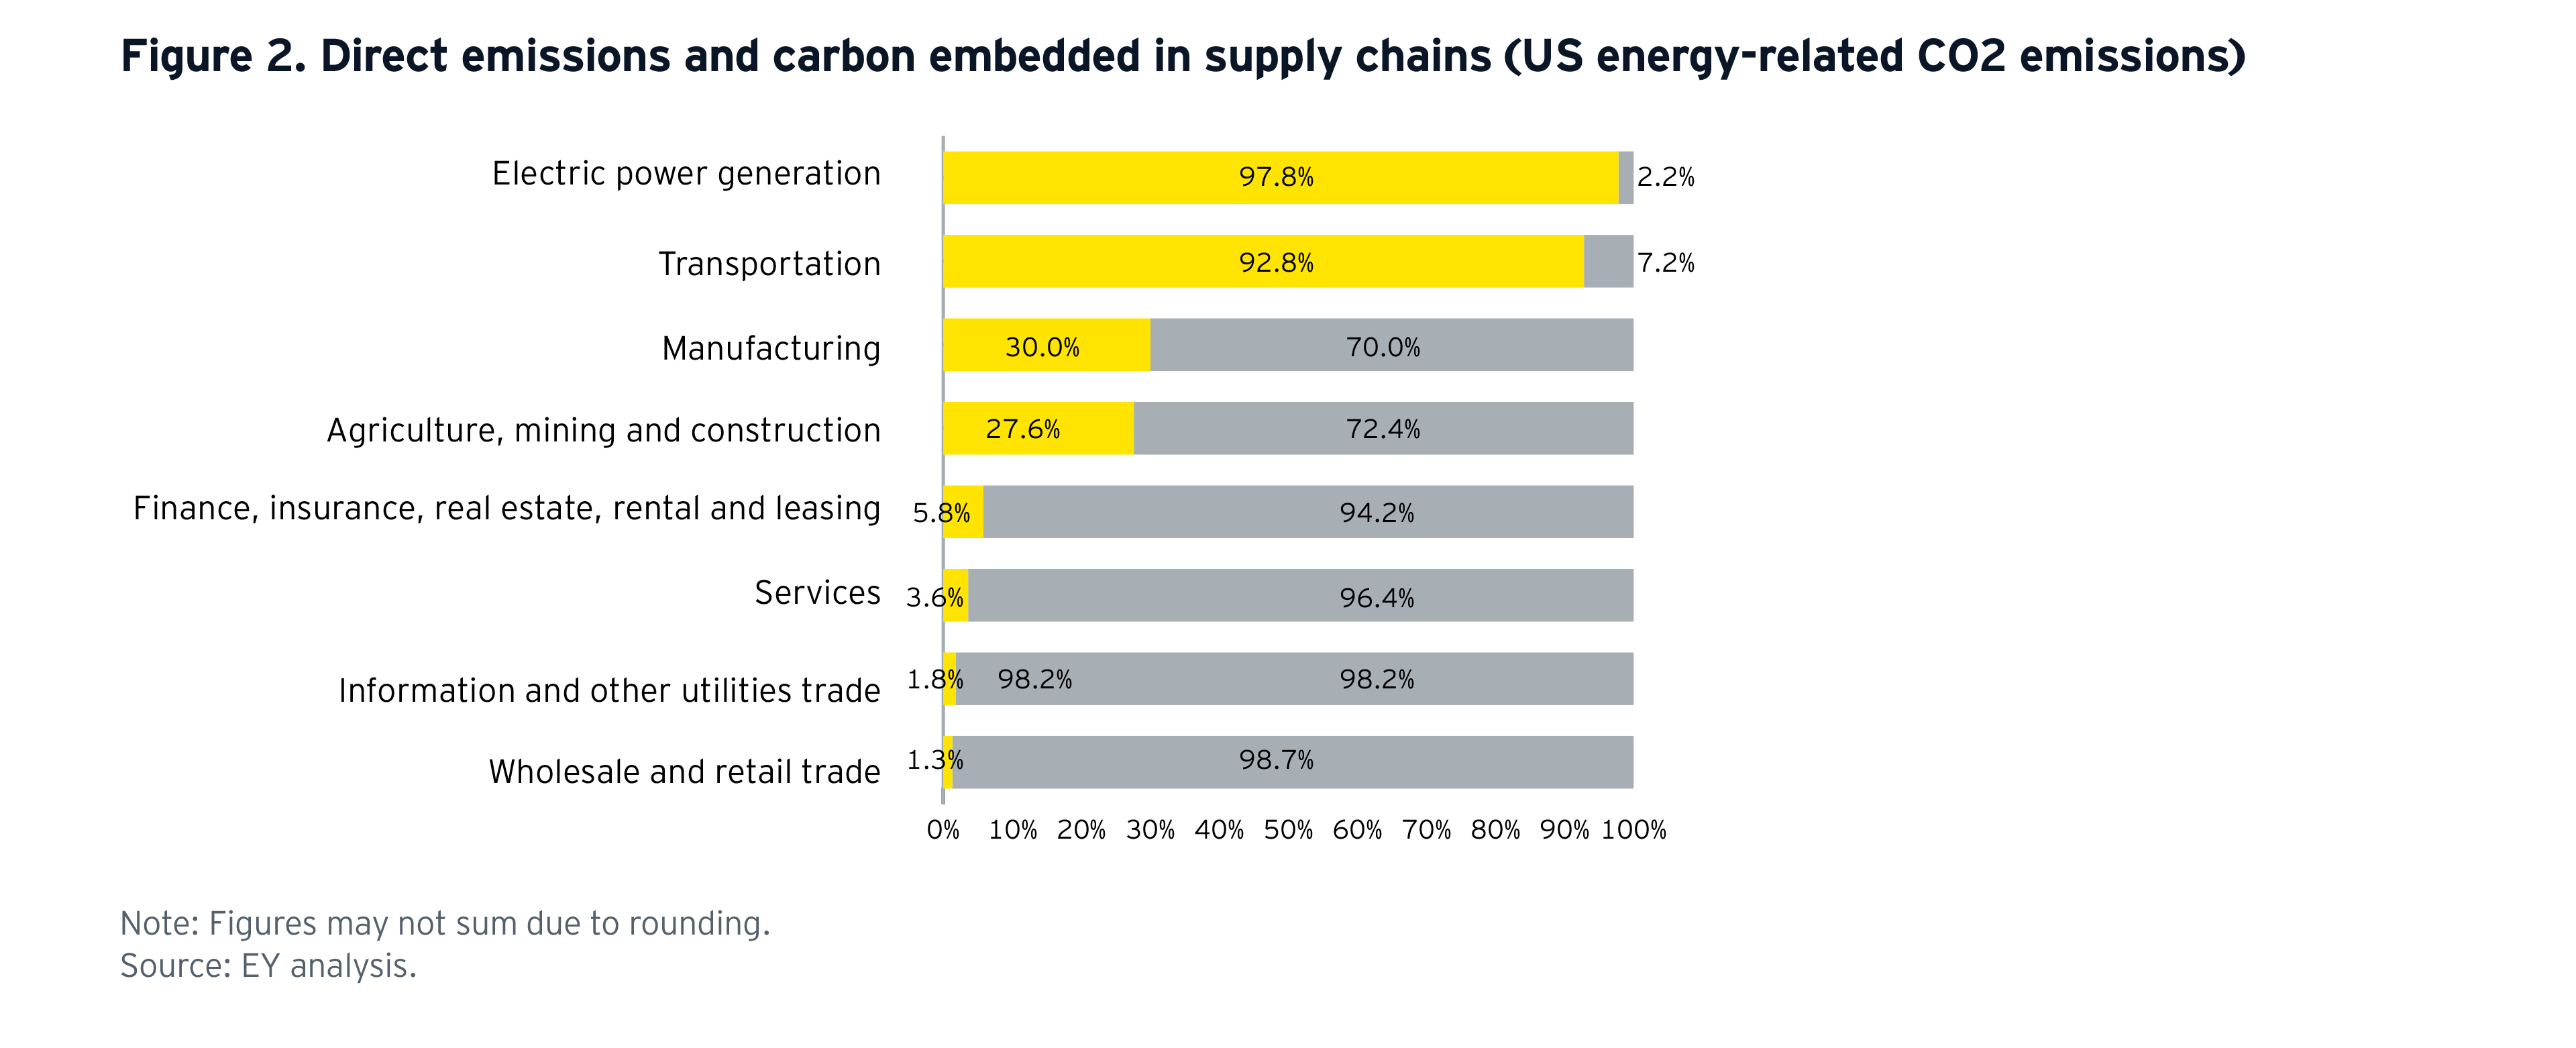 ey-carbon-embedded-in-supply-chains